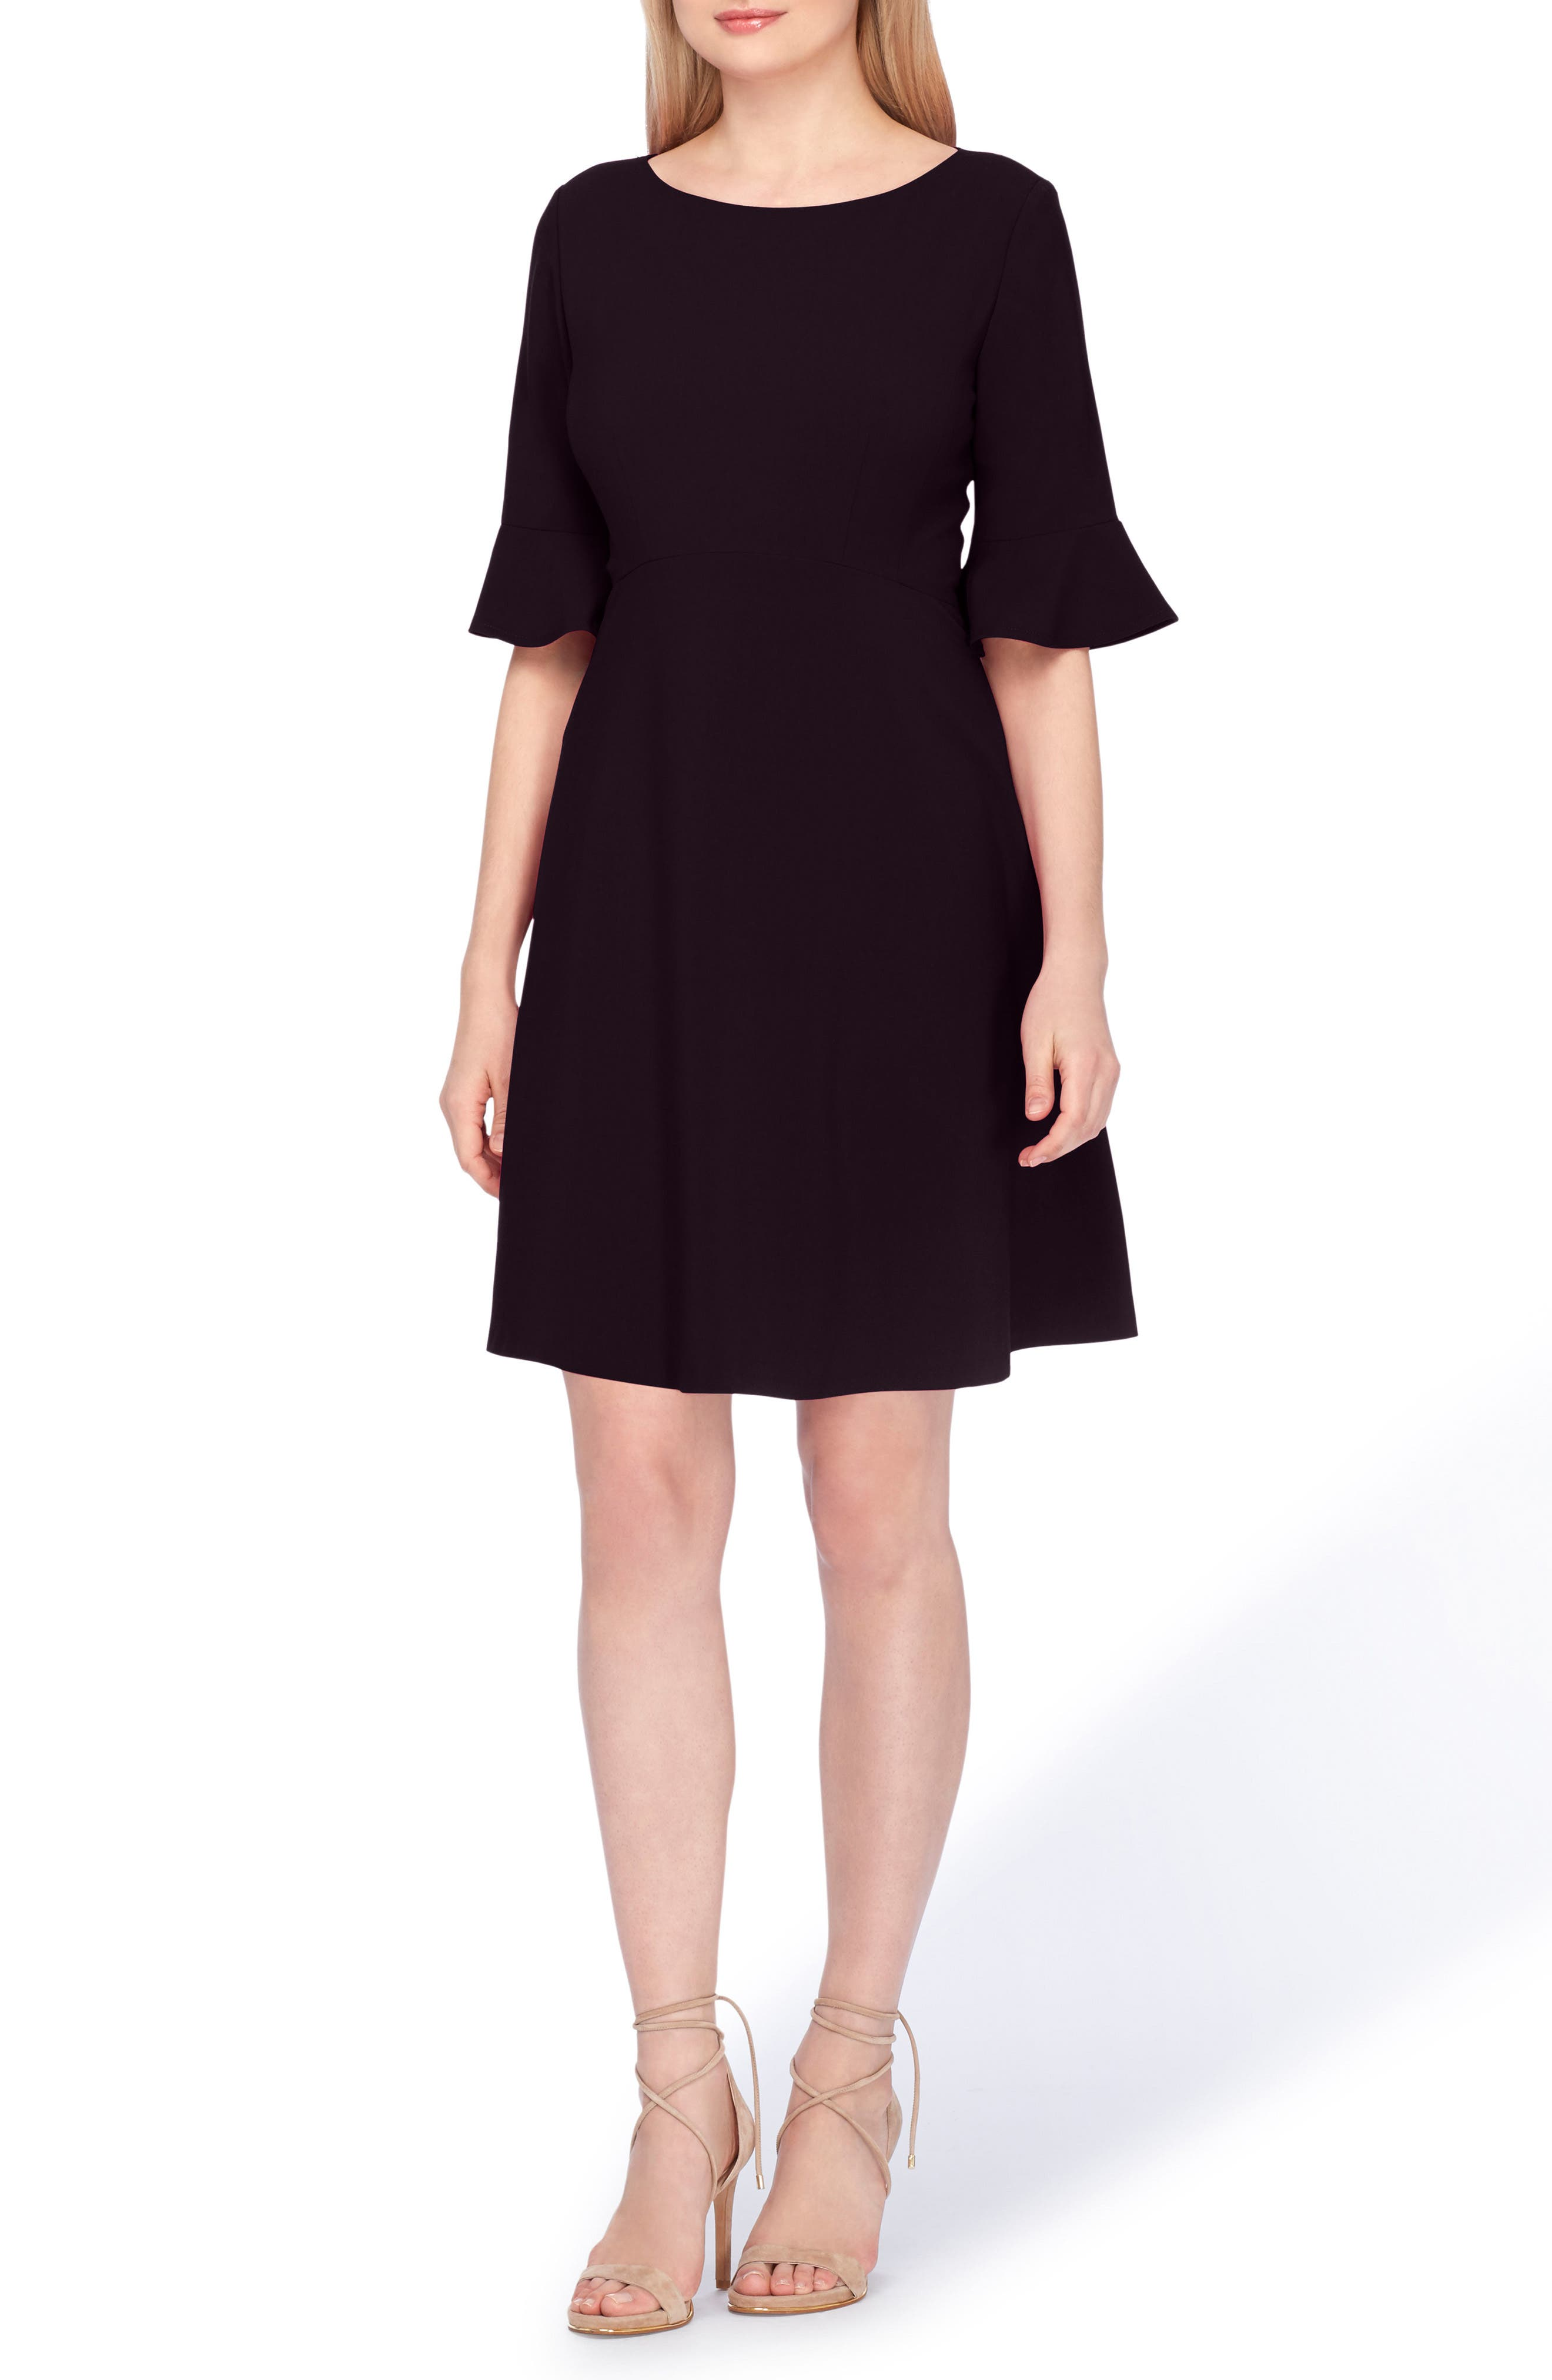 TAHARI Ruffle Sleeve A-Line Dress